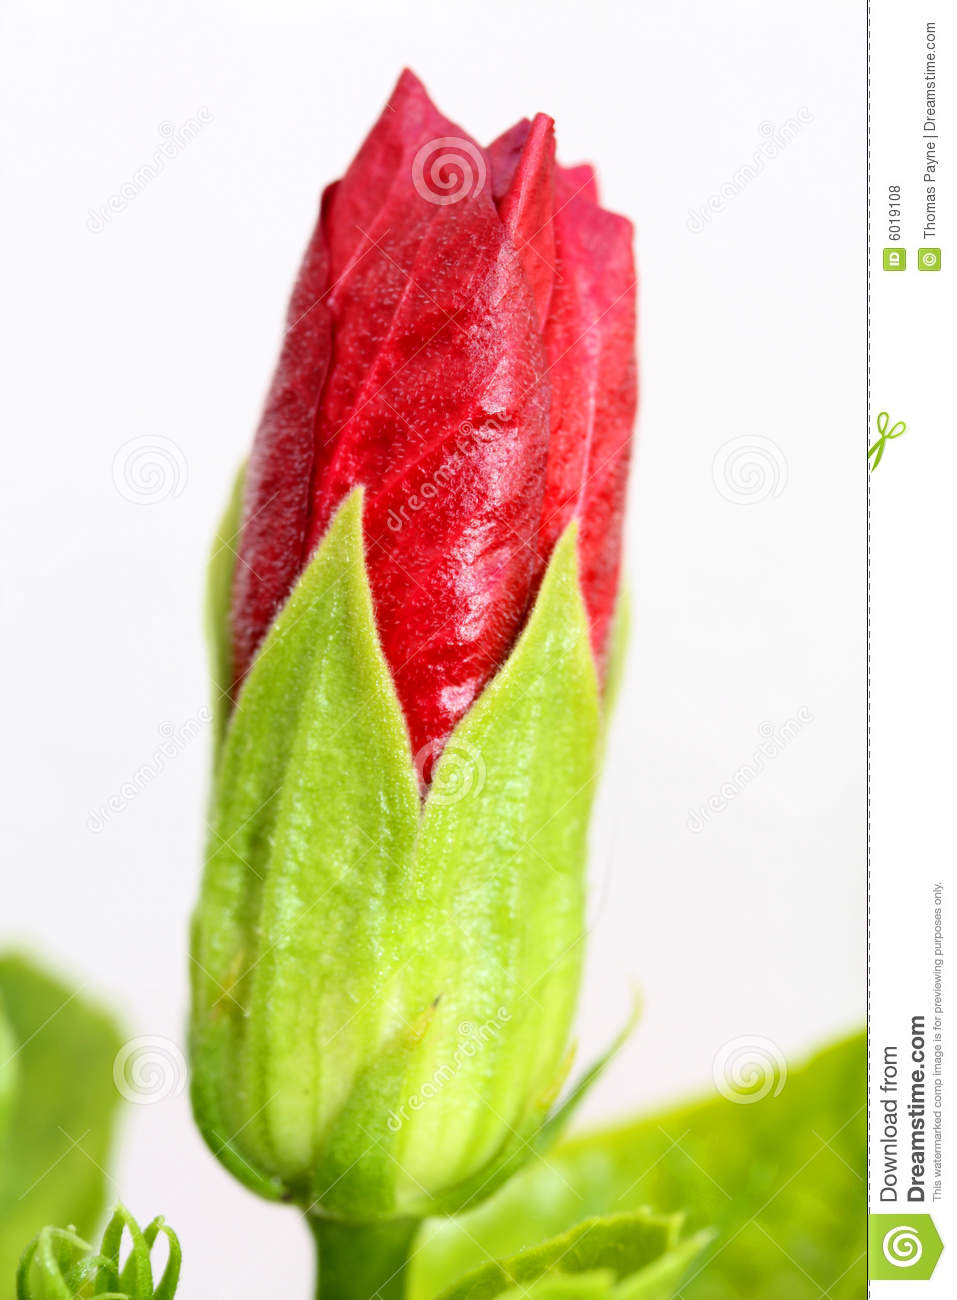 Red Flower Bud Stock Photo Image Of Isolated Flower 6019108